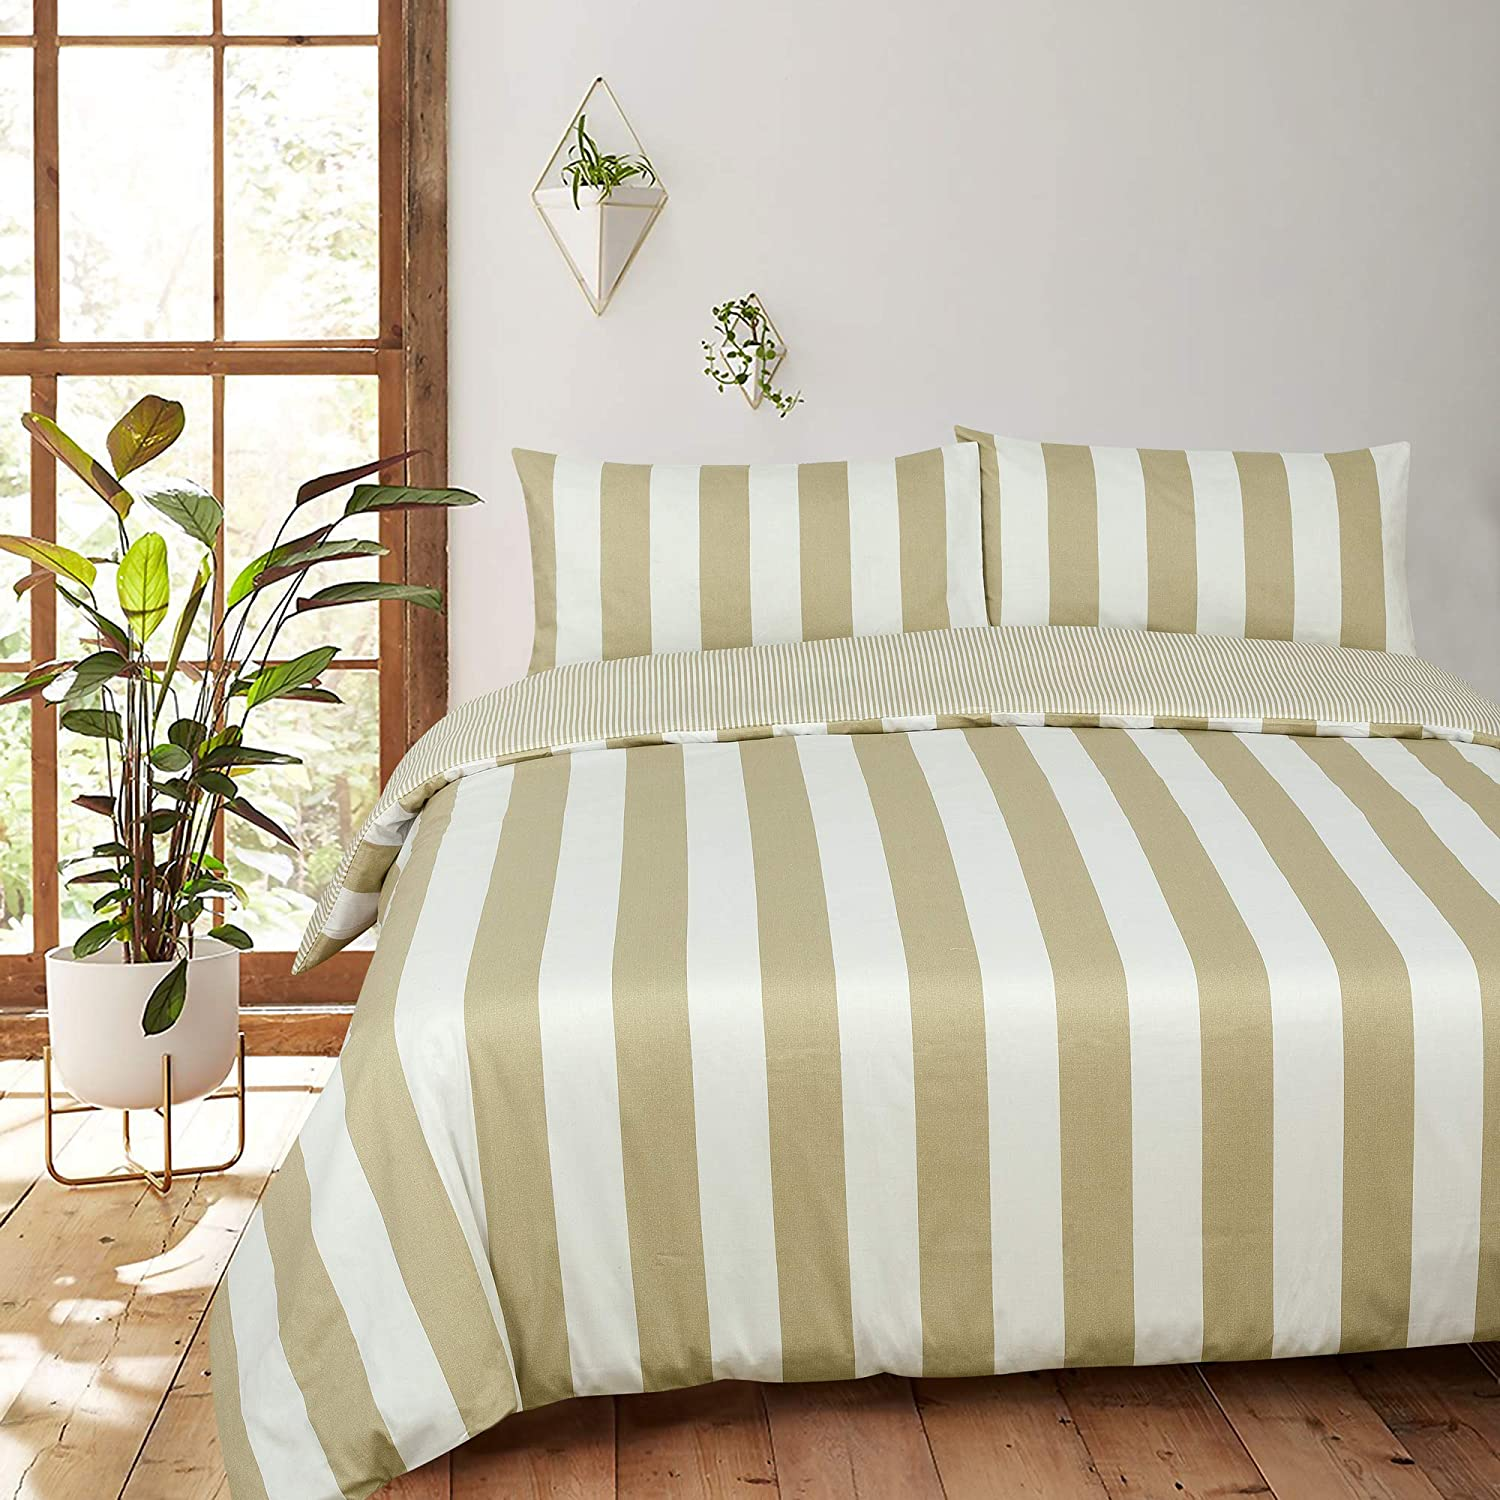 Sateen Weaved with Fleurise Design Button closure Duvet Cover for better Sleep down Casa De Rococo Double Bed Duvet Cover Set with 2 Pillowcases Sizes 200 x 200 cm and 50 X 75 cm